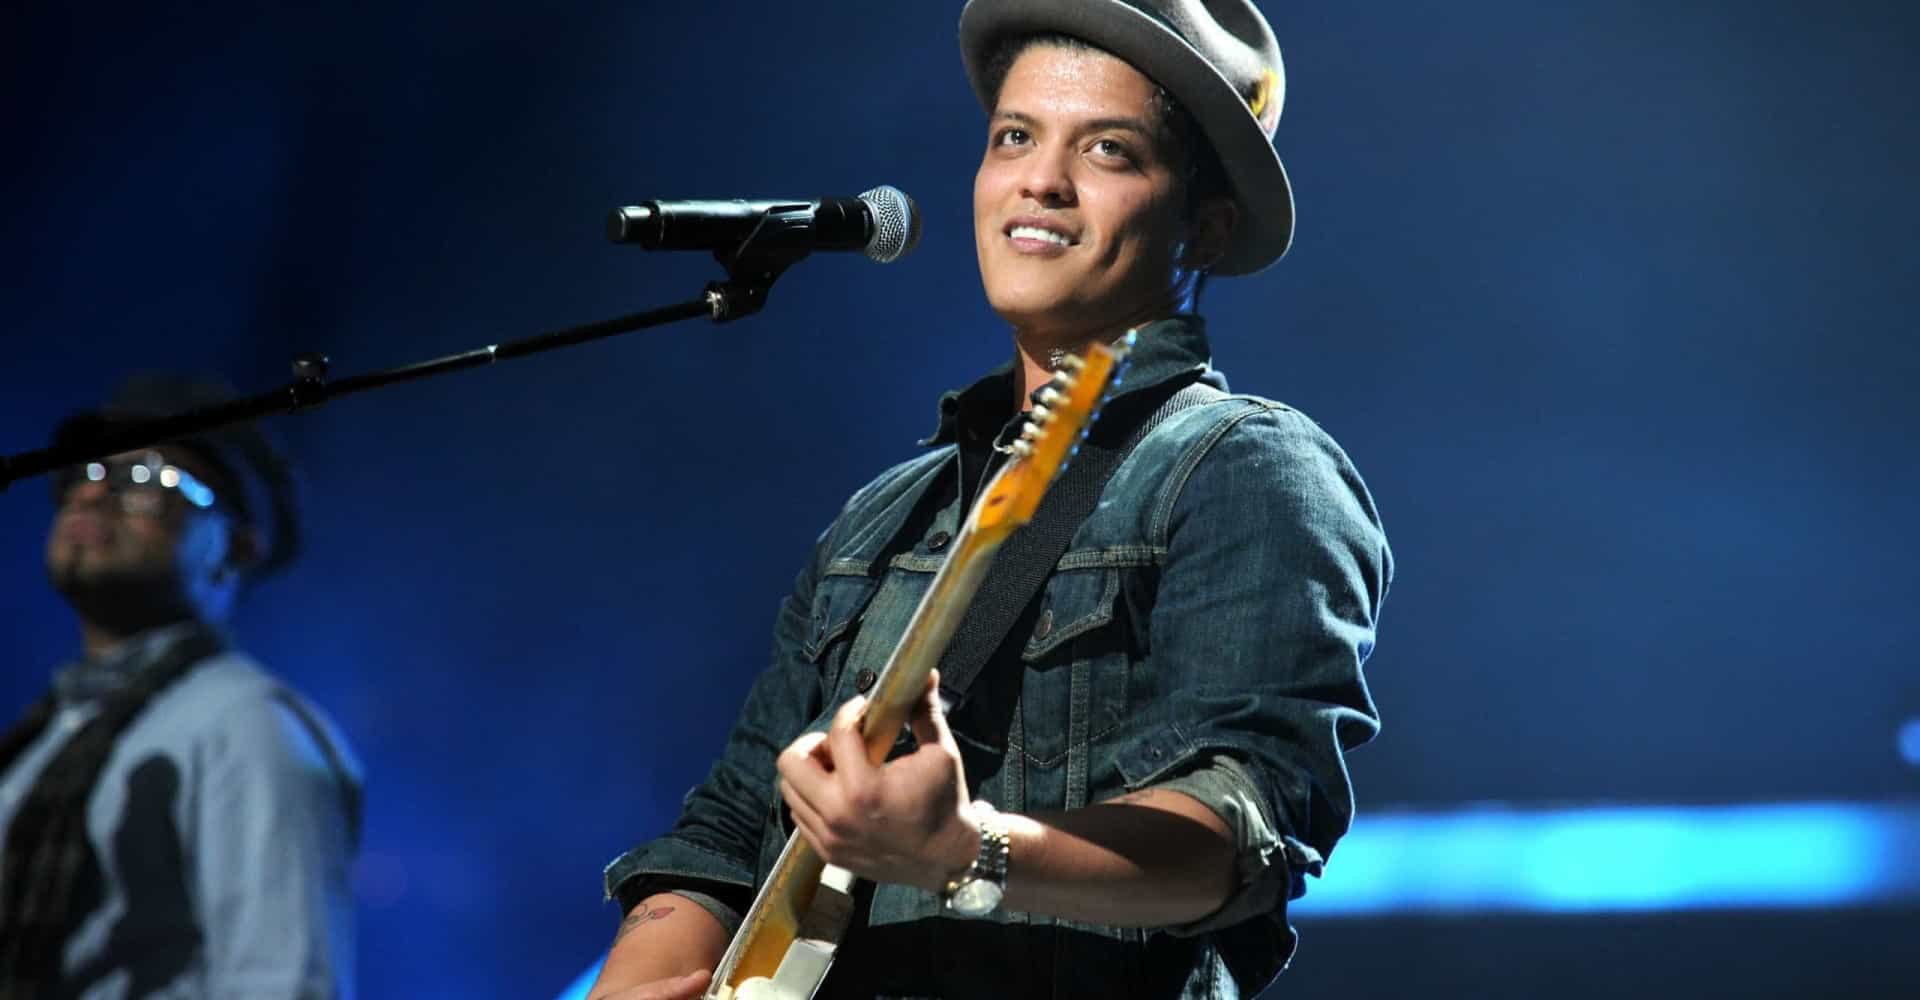 Bruno Mars: The road from impersonator to icon